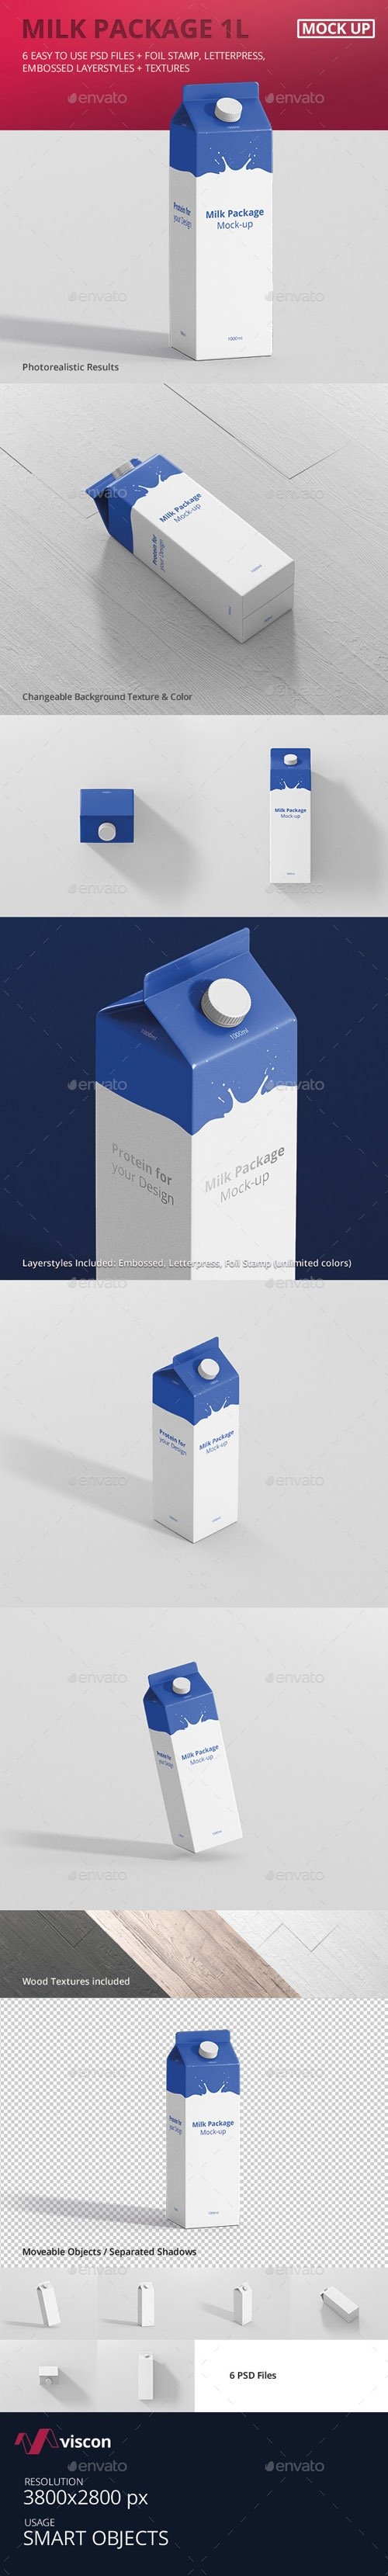 Juice / Milk Mockup - 1L Carton Box 18160970